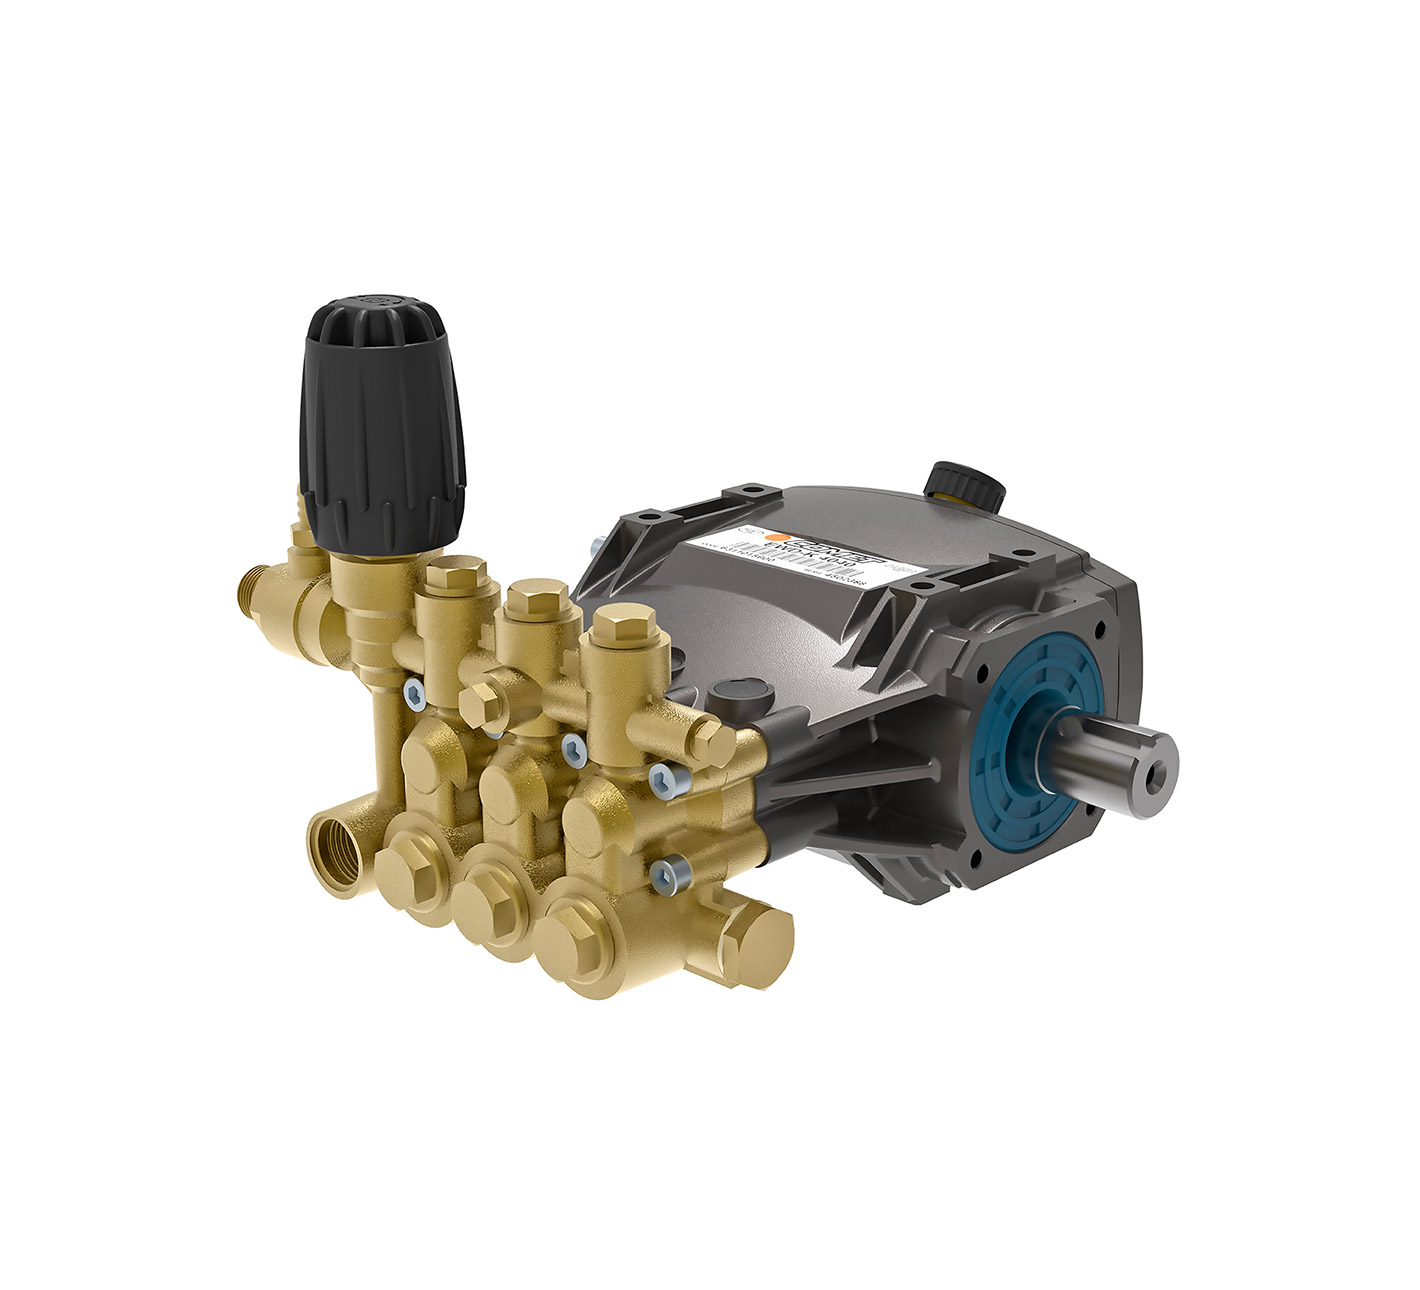 ewd-k s 24 Comet Industrial Pumps